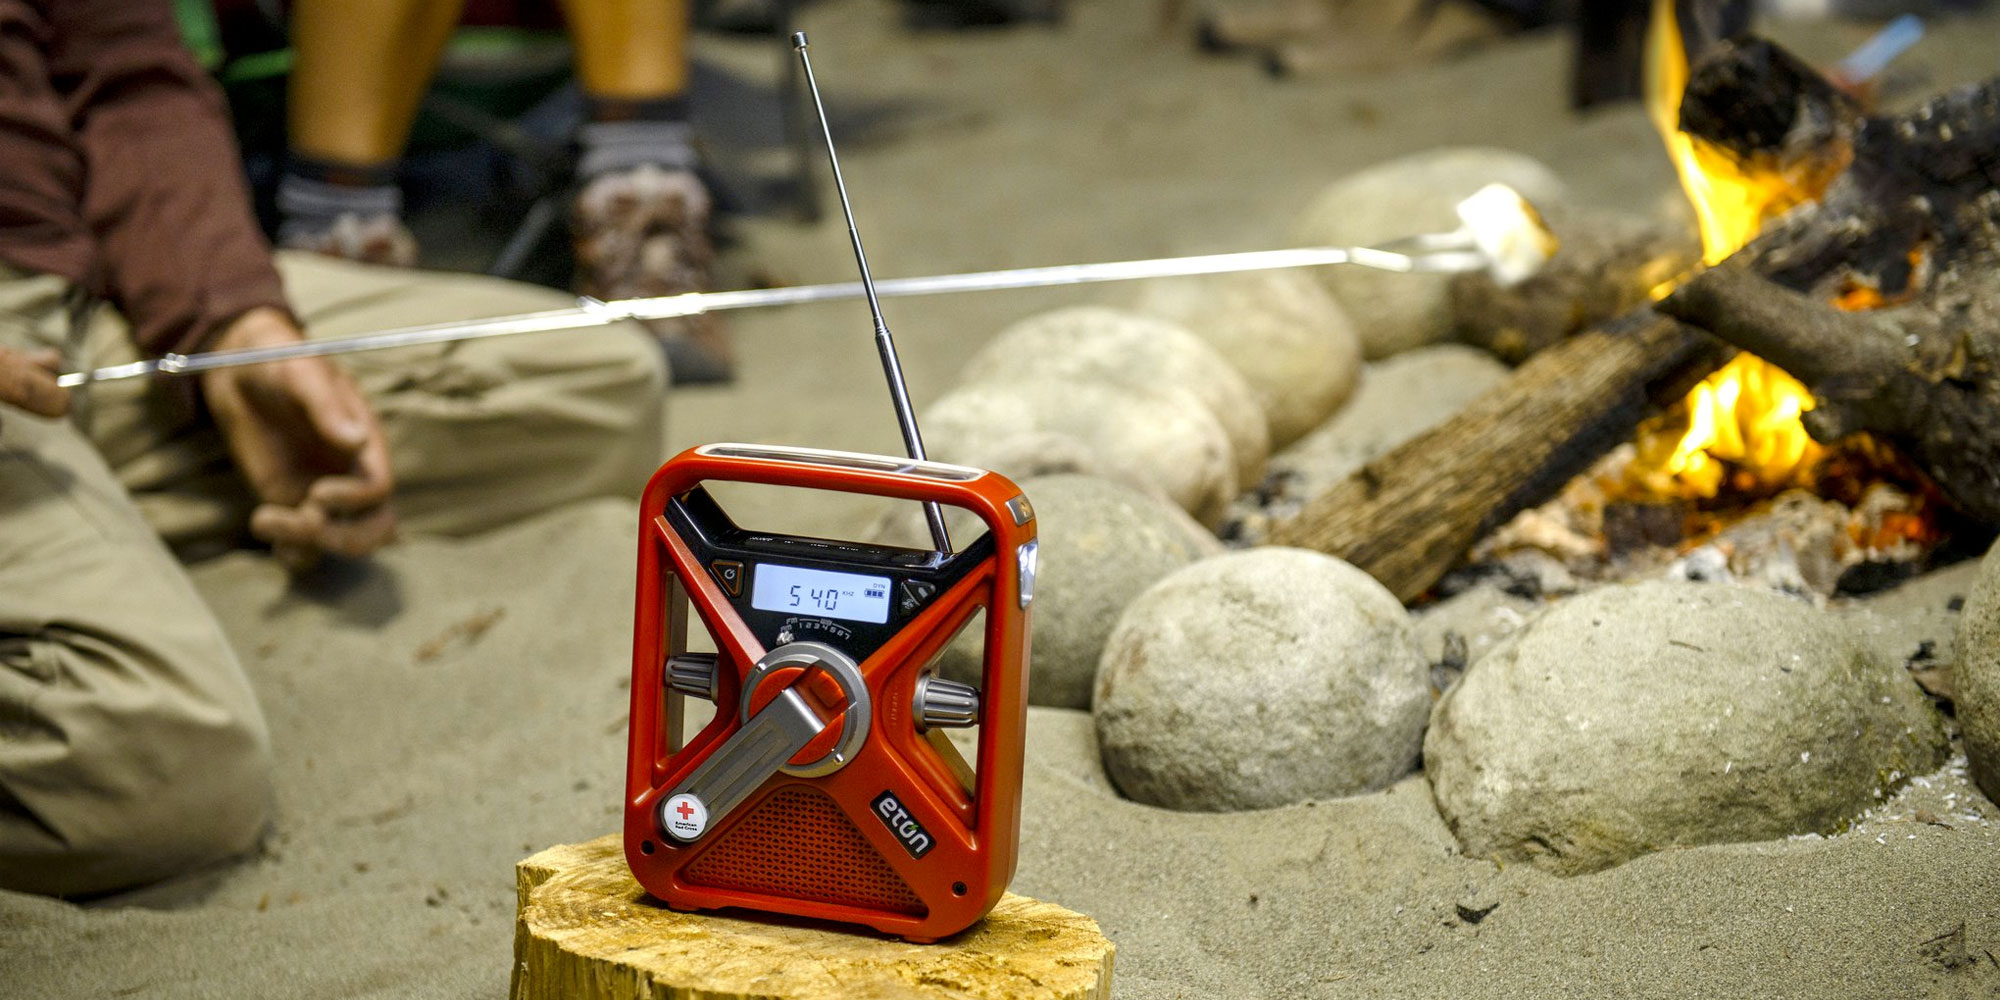 This crank emergency weather radio/phone charger is needed in any preparation kit for $35